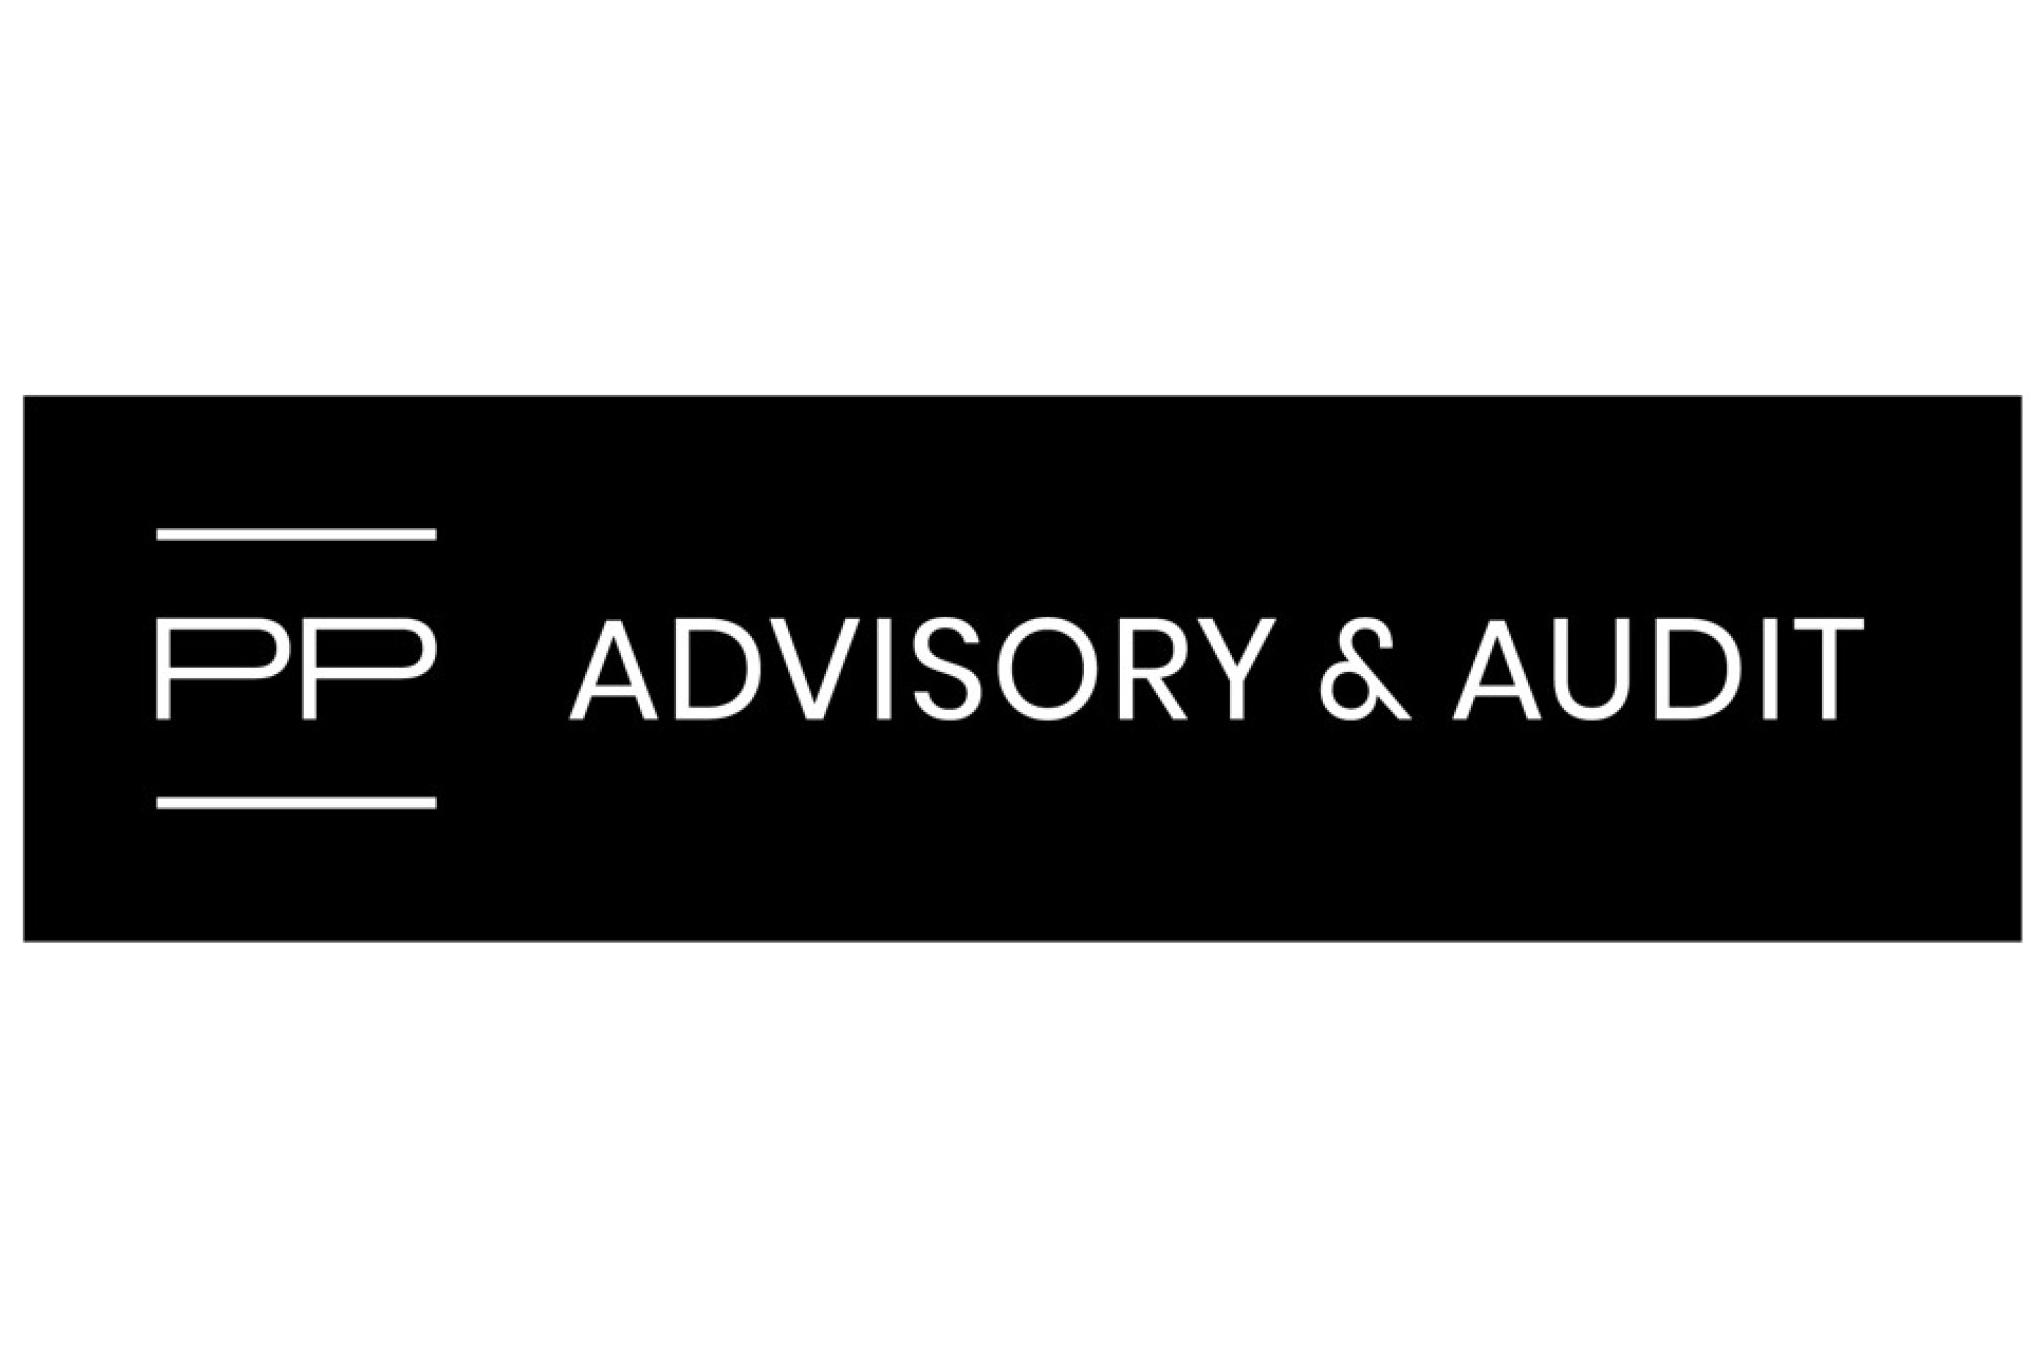 PP Advisory & Audit